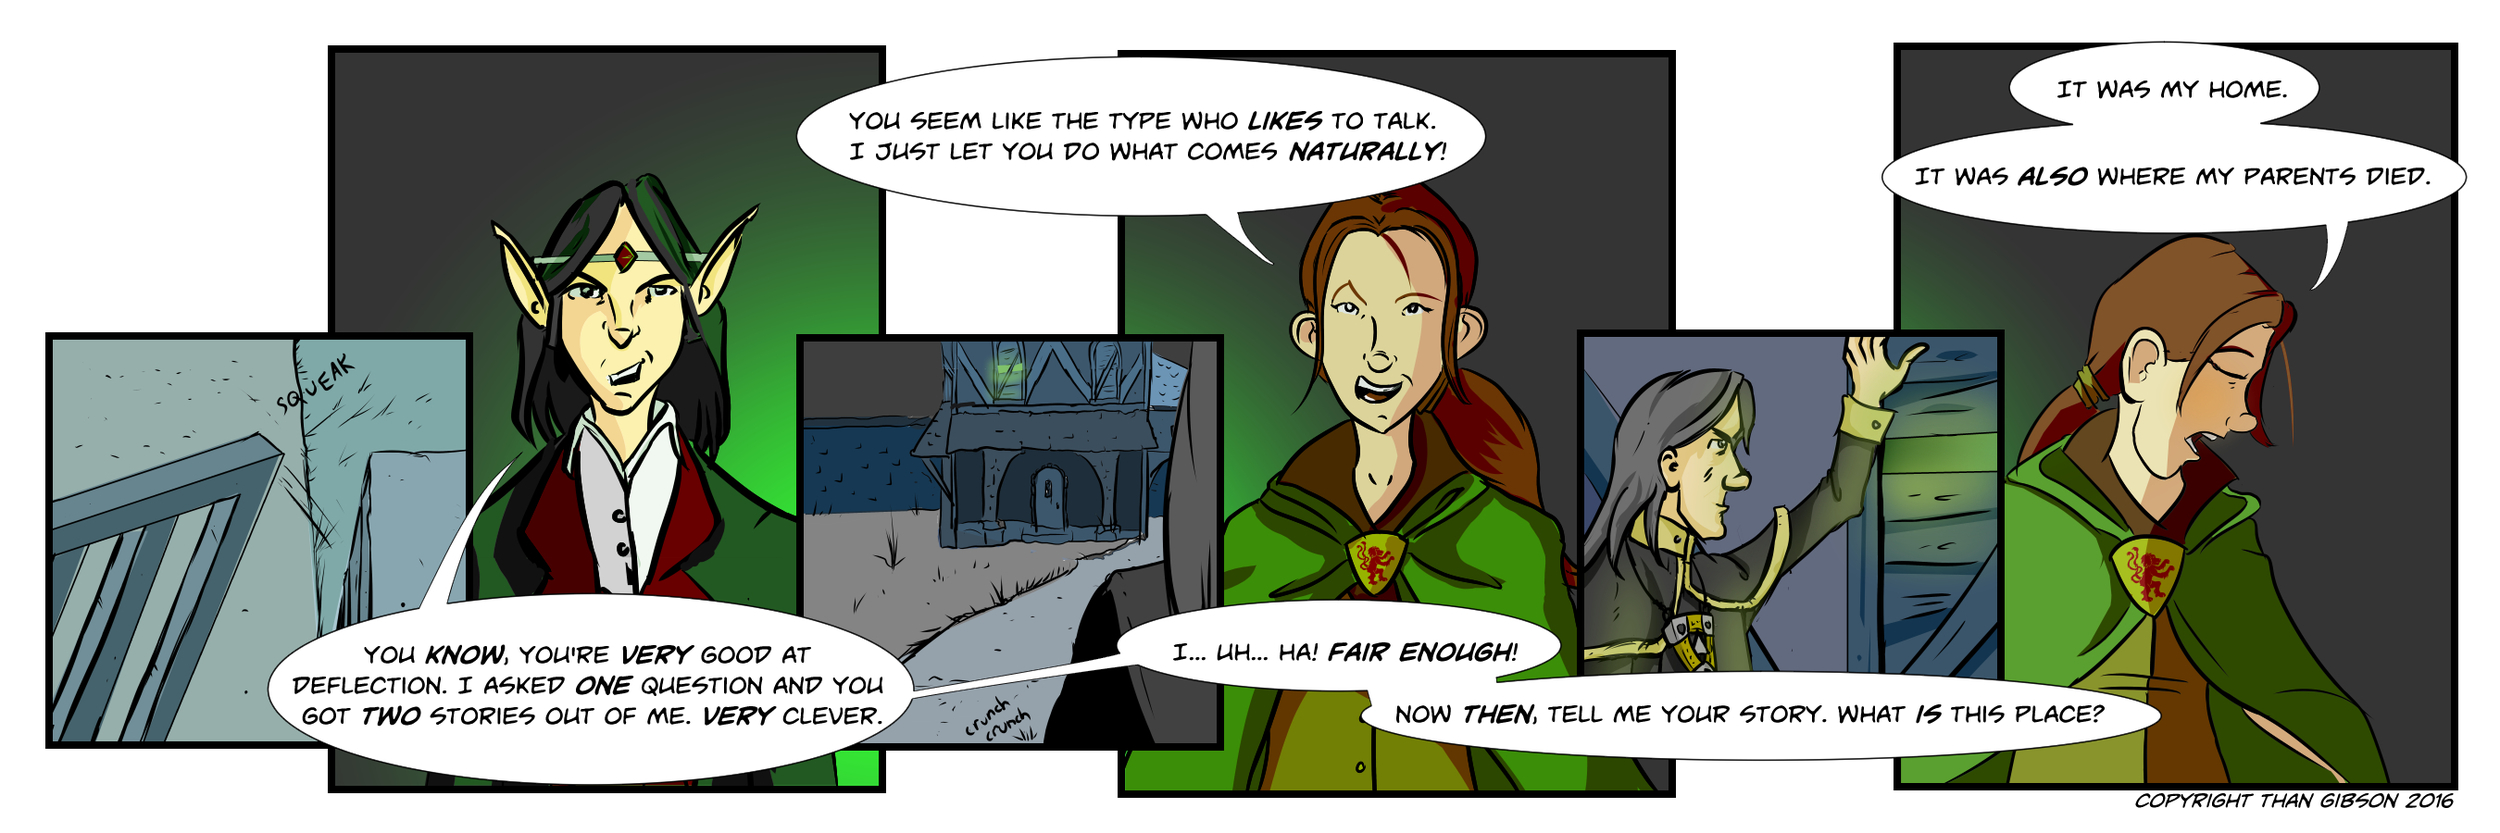 CHRONICLE: A CHRONICLE OF THIEVES - CHAPTER 3, STRIP 13